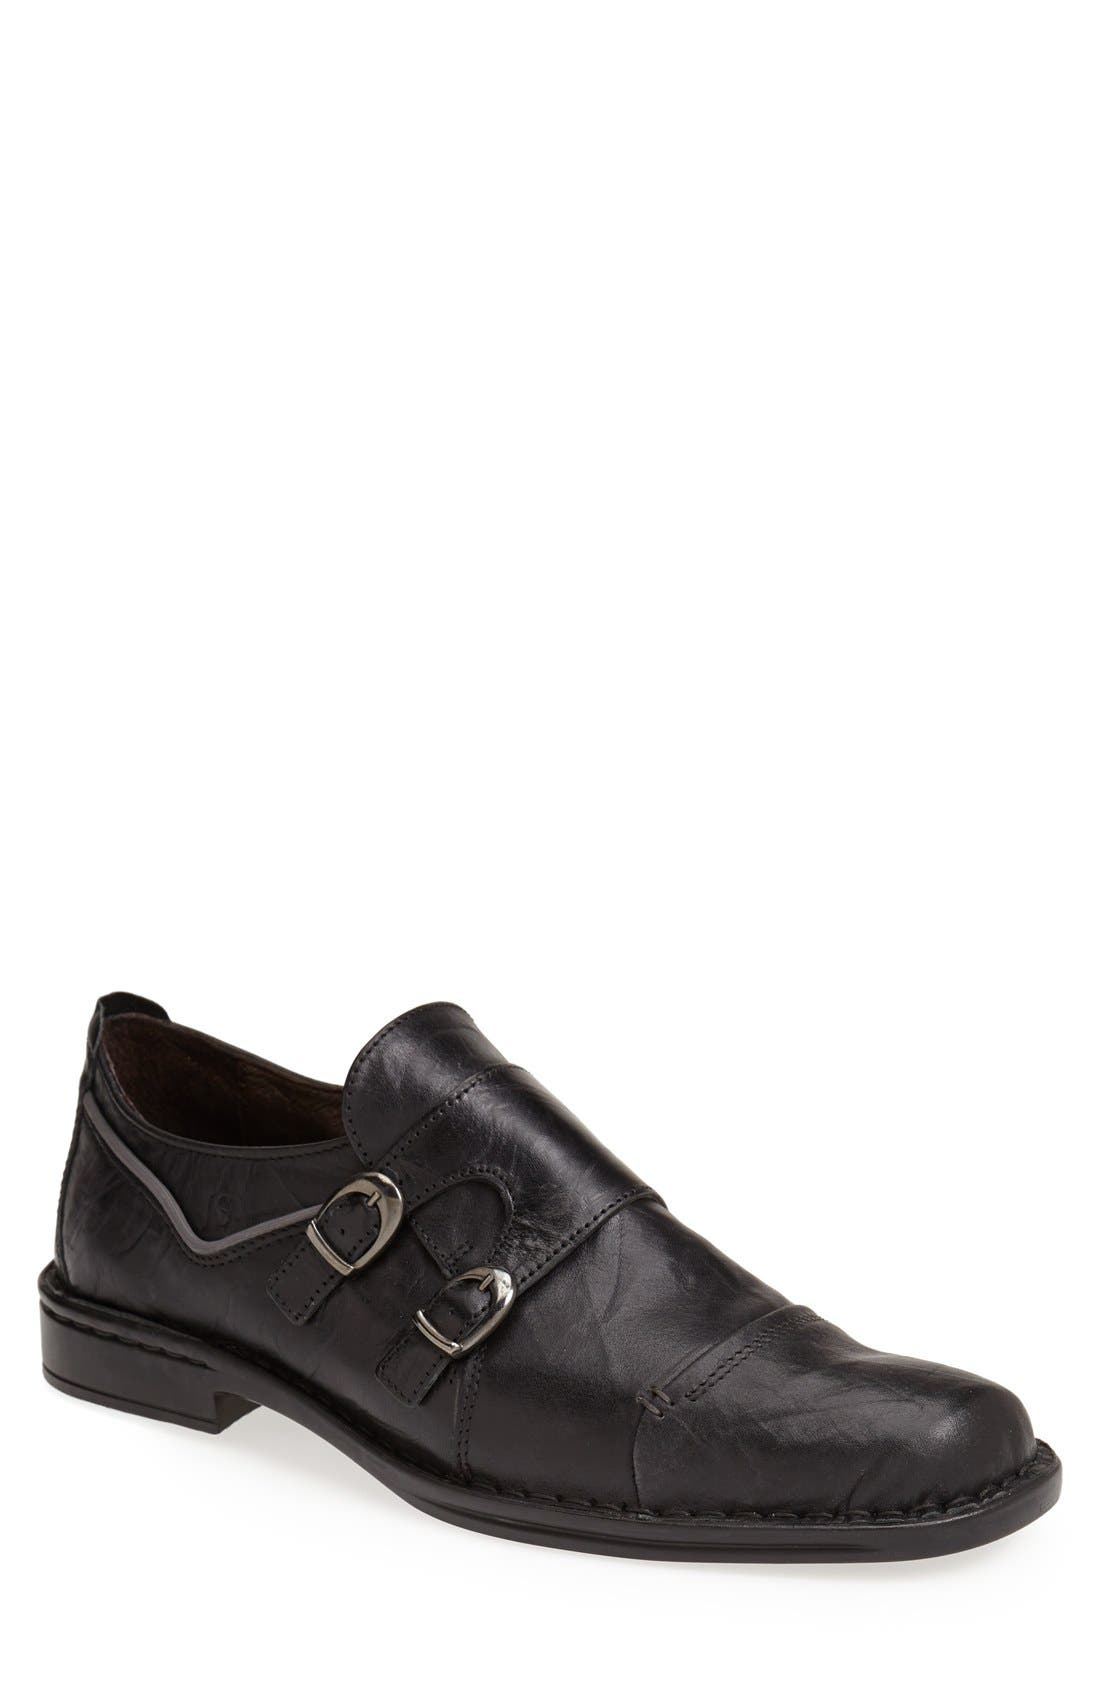 Main Image - Josef Seibel 'Douglas 11' Double Monk Strap Shoe (Men)